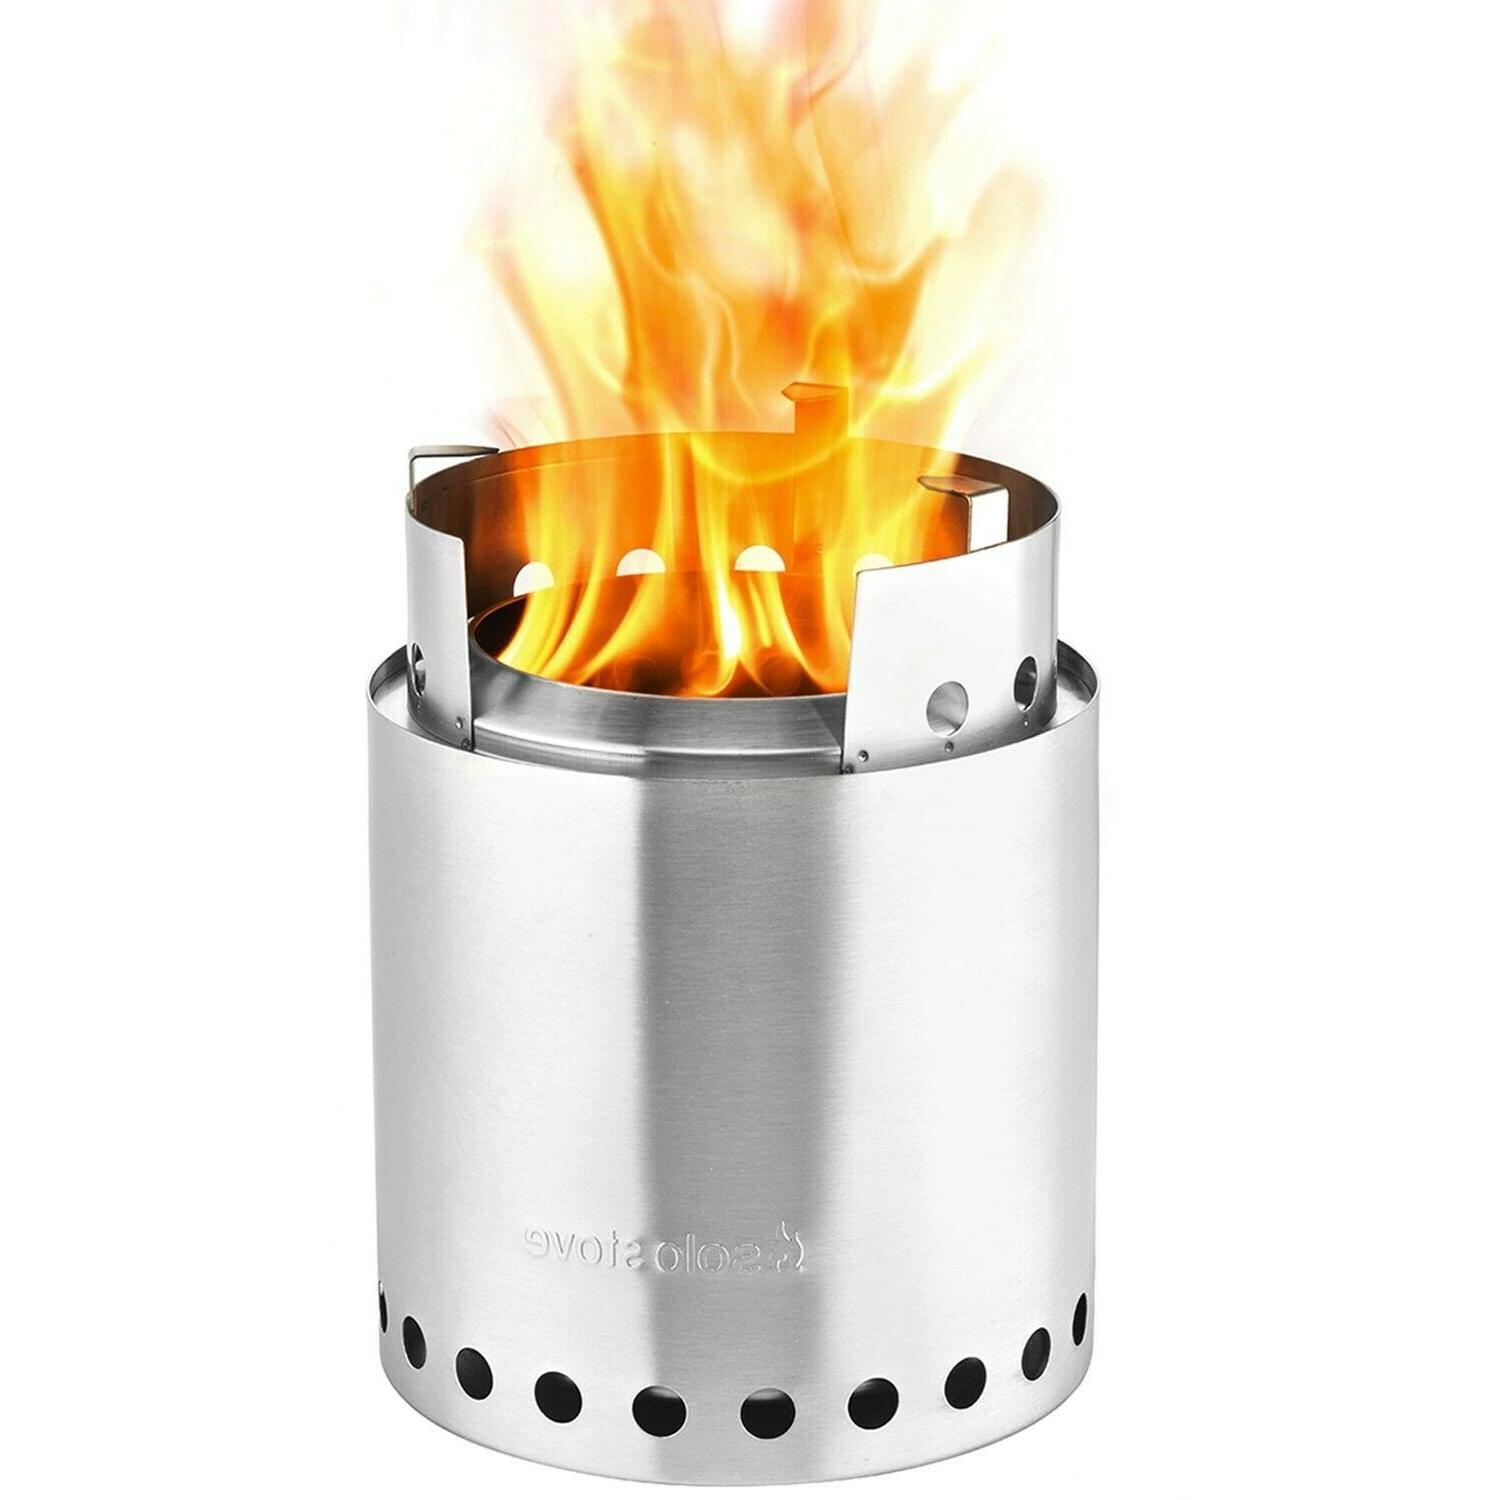 Solo 2-4 Person Wood Burning Stove for